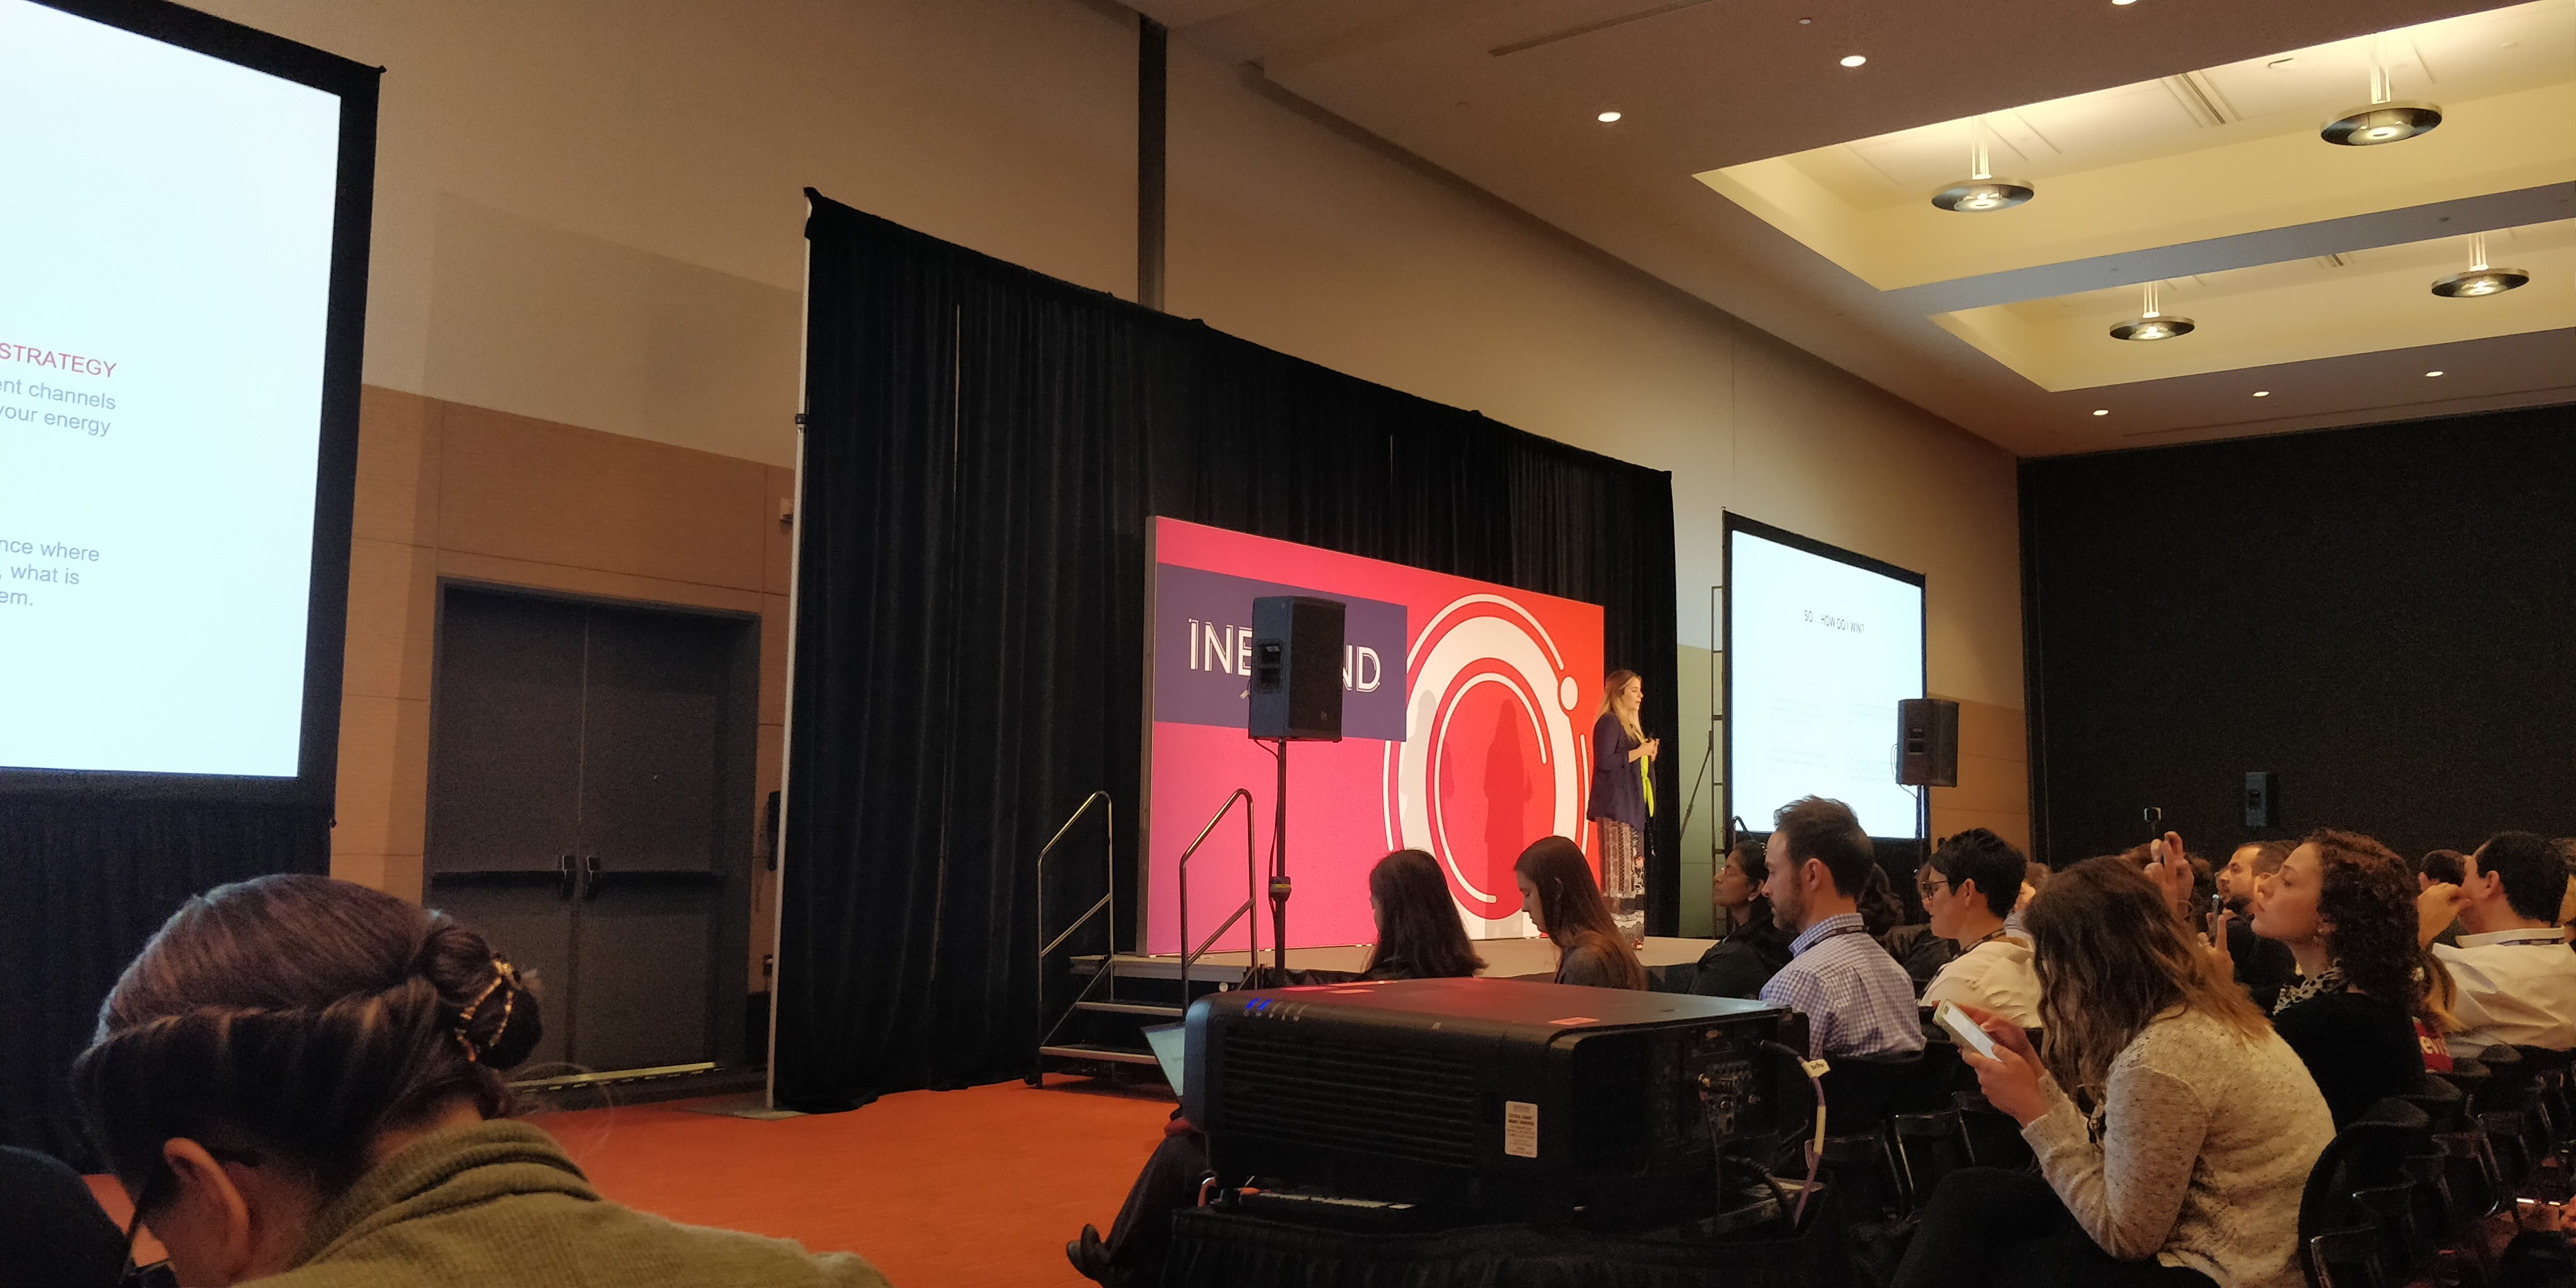 Insynth @INBOUND19 - Social Media Marketing in 2019: What's Changed, and Why Your 2016 Playbook Is Broken